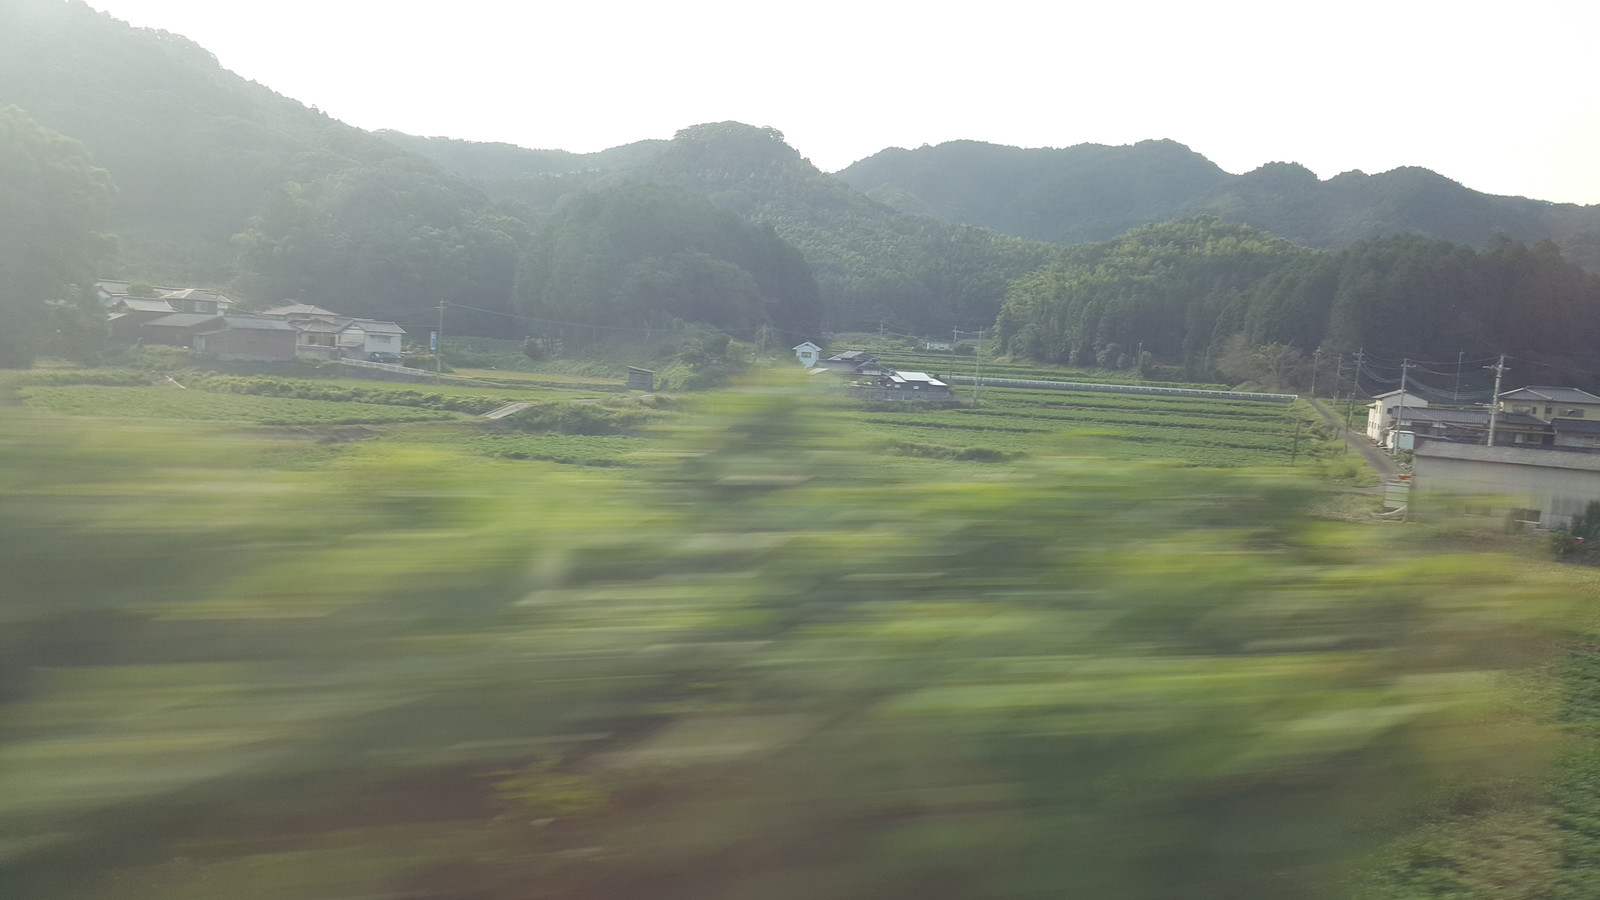 Northern Kyushu countryside whizzing by on the Shinkansen